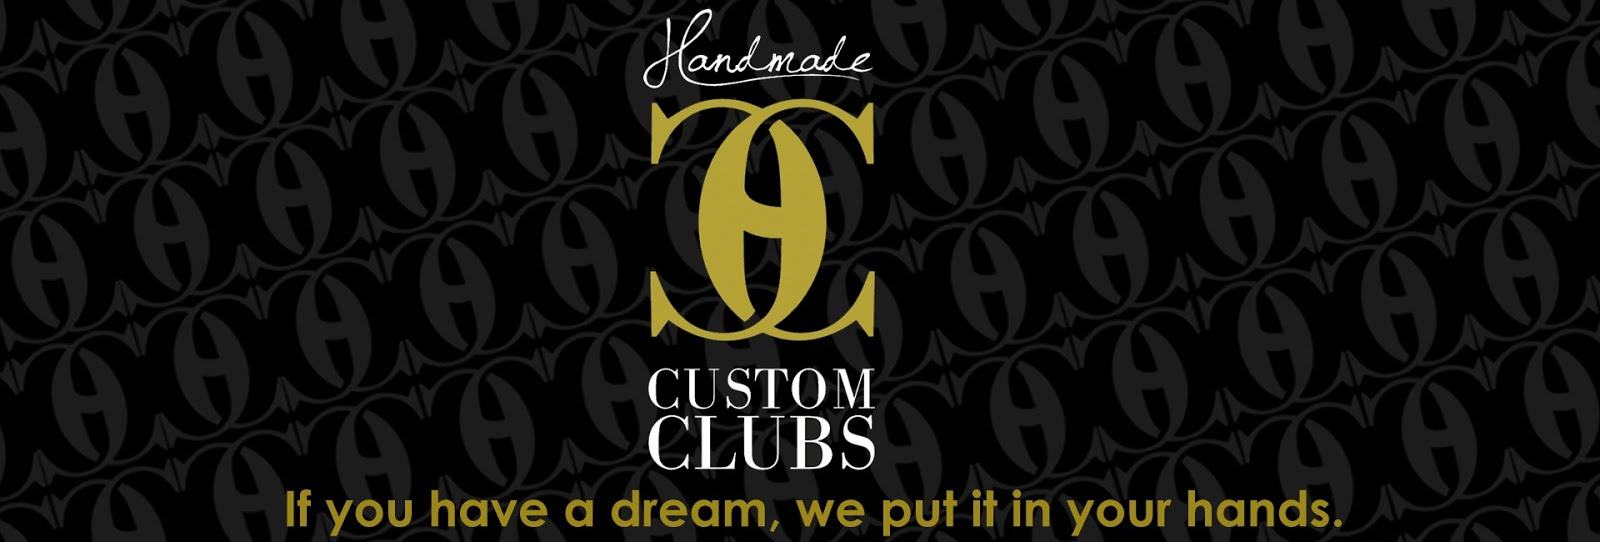 HANDMADE CUSTOM CLUB